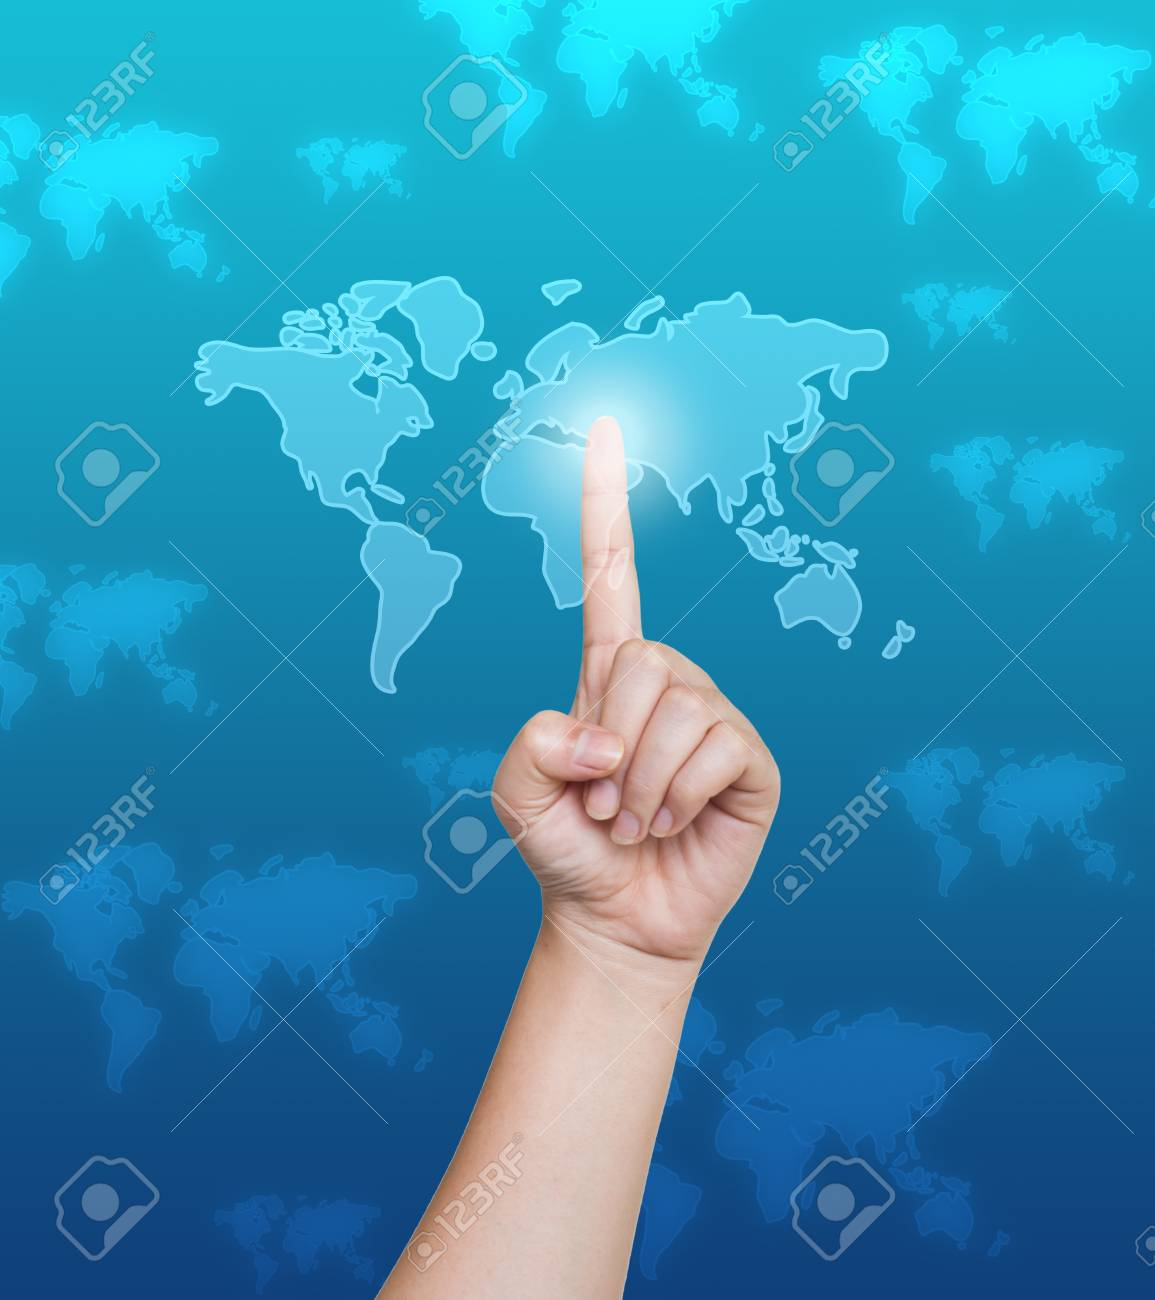 Hand pushing world map button on a touch screen interface Stock Photo - 15030021